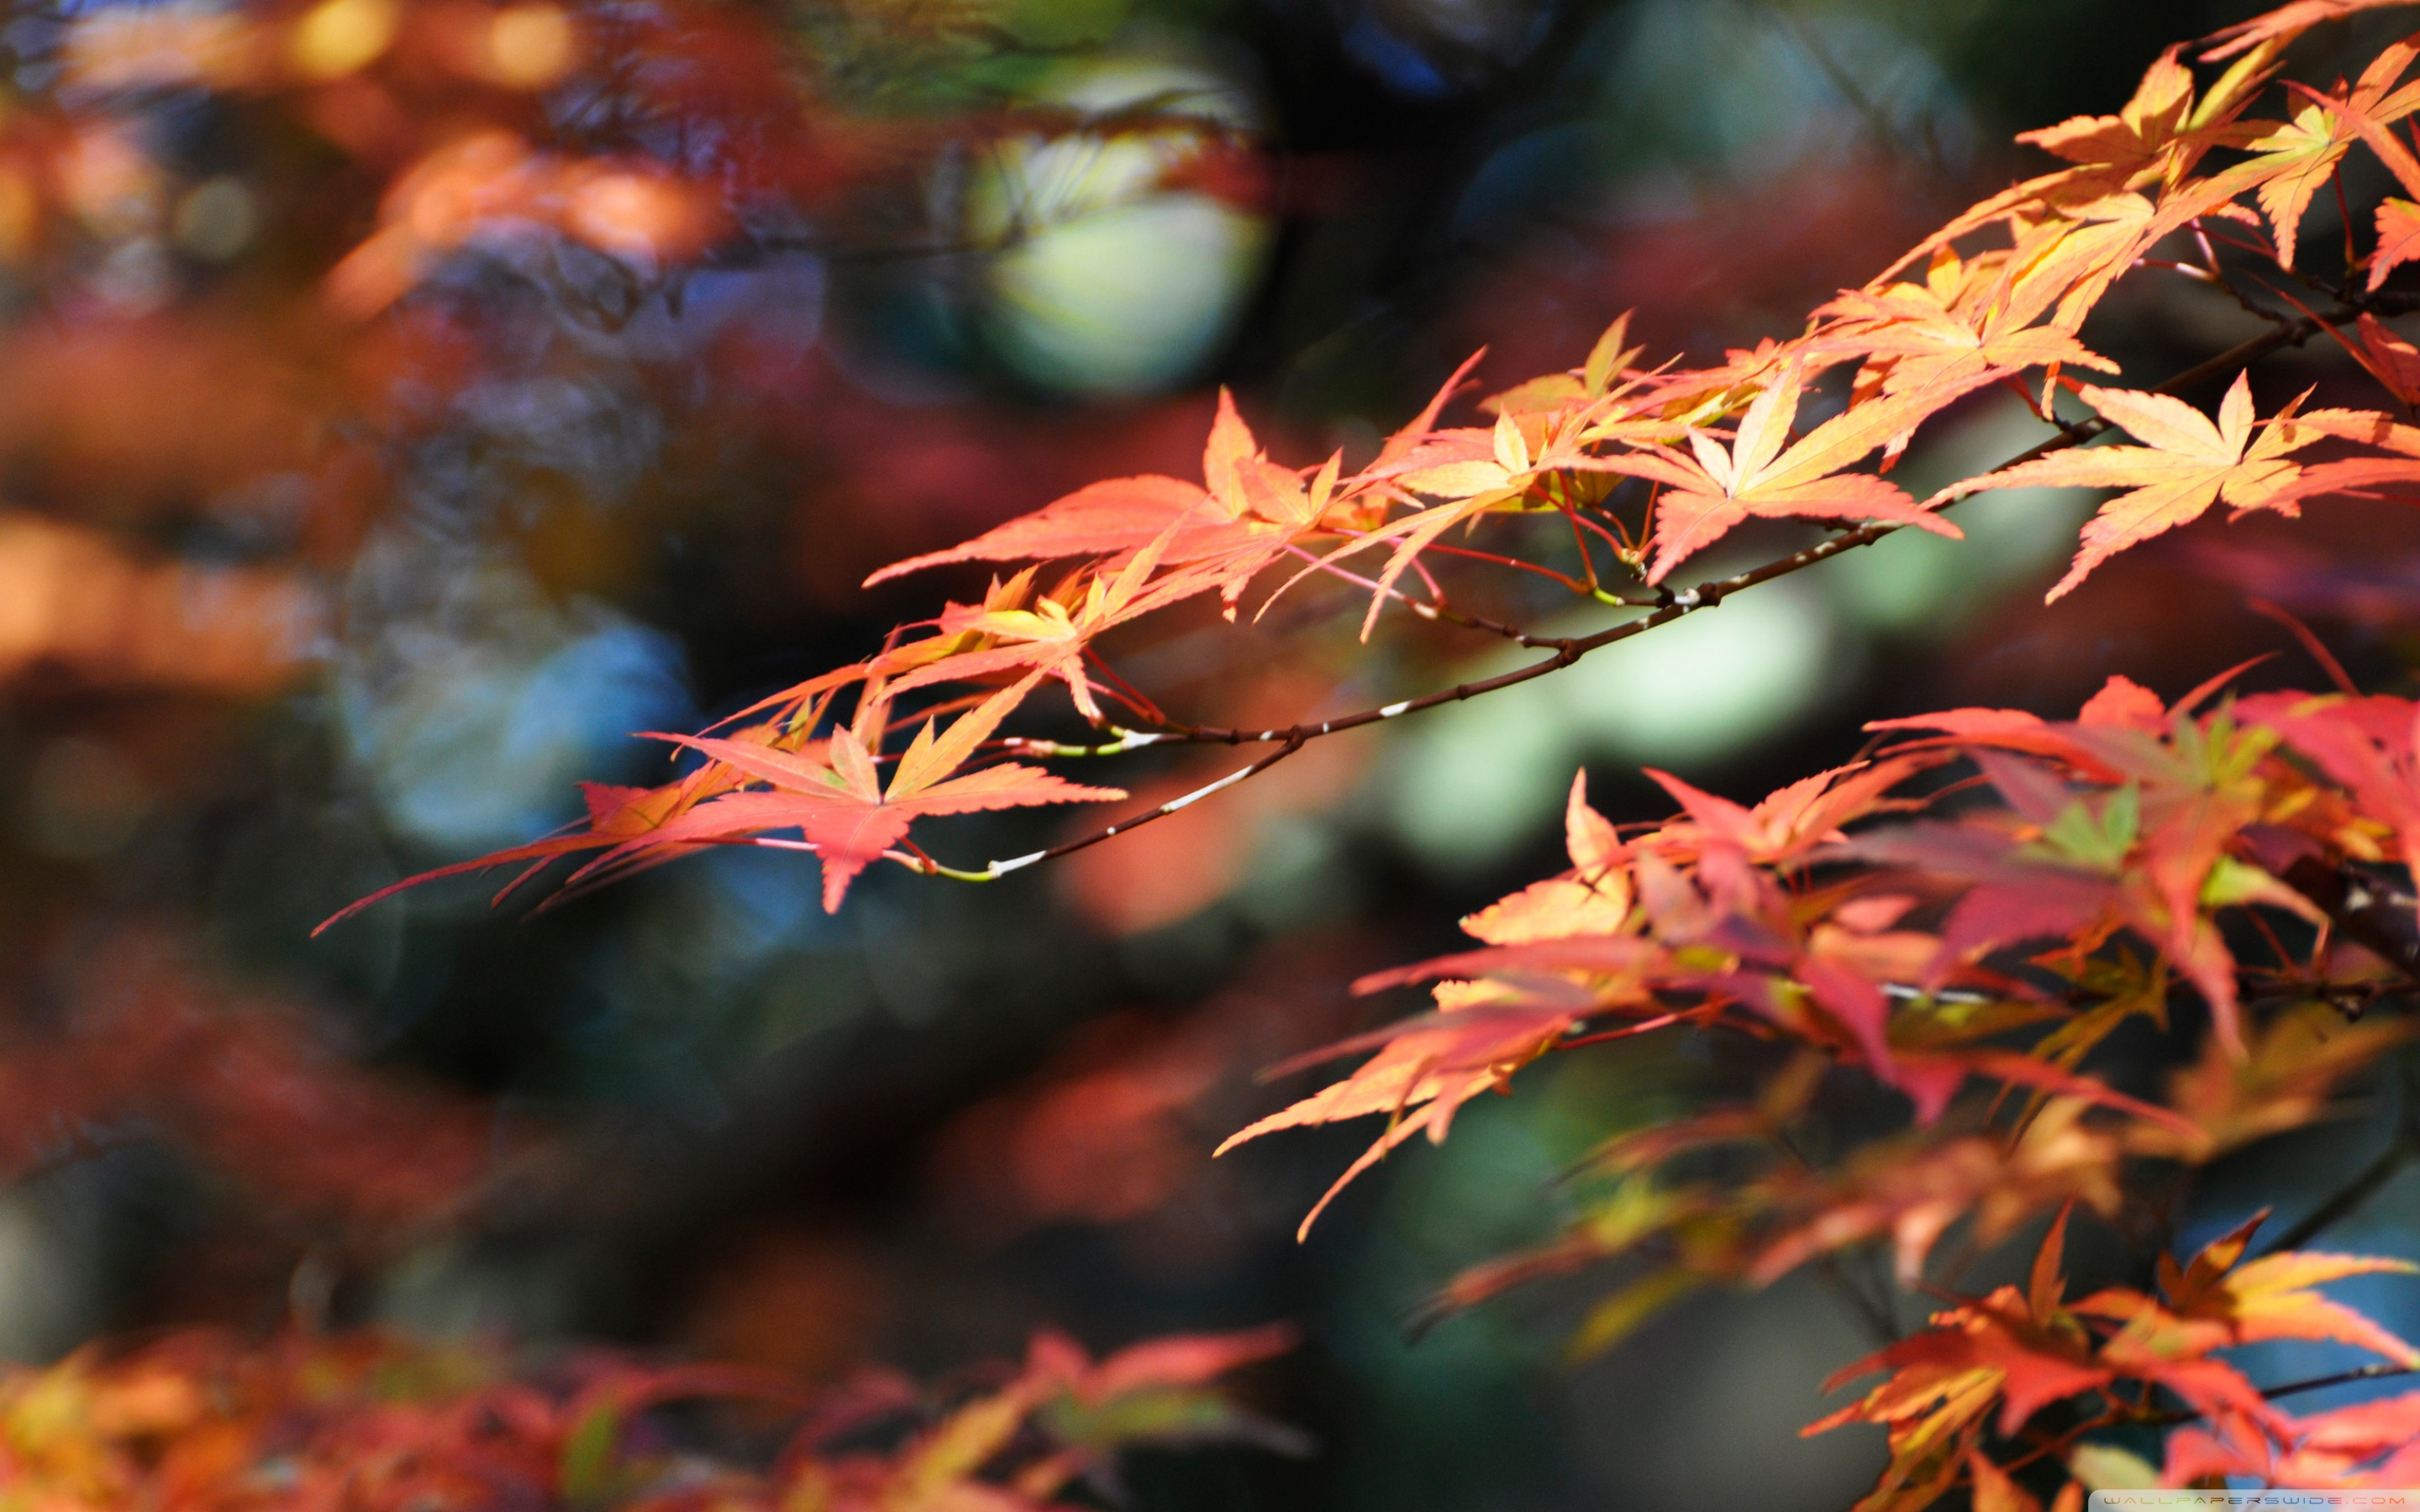 Fall Leaves Iphone Wallpaper Japanese Maple Leaves Fall Colors 4k Hd Desktop Wallpaper